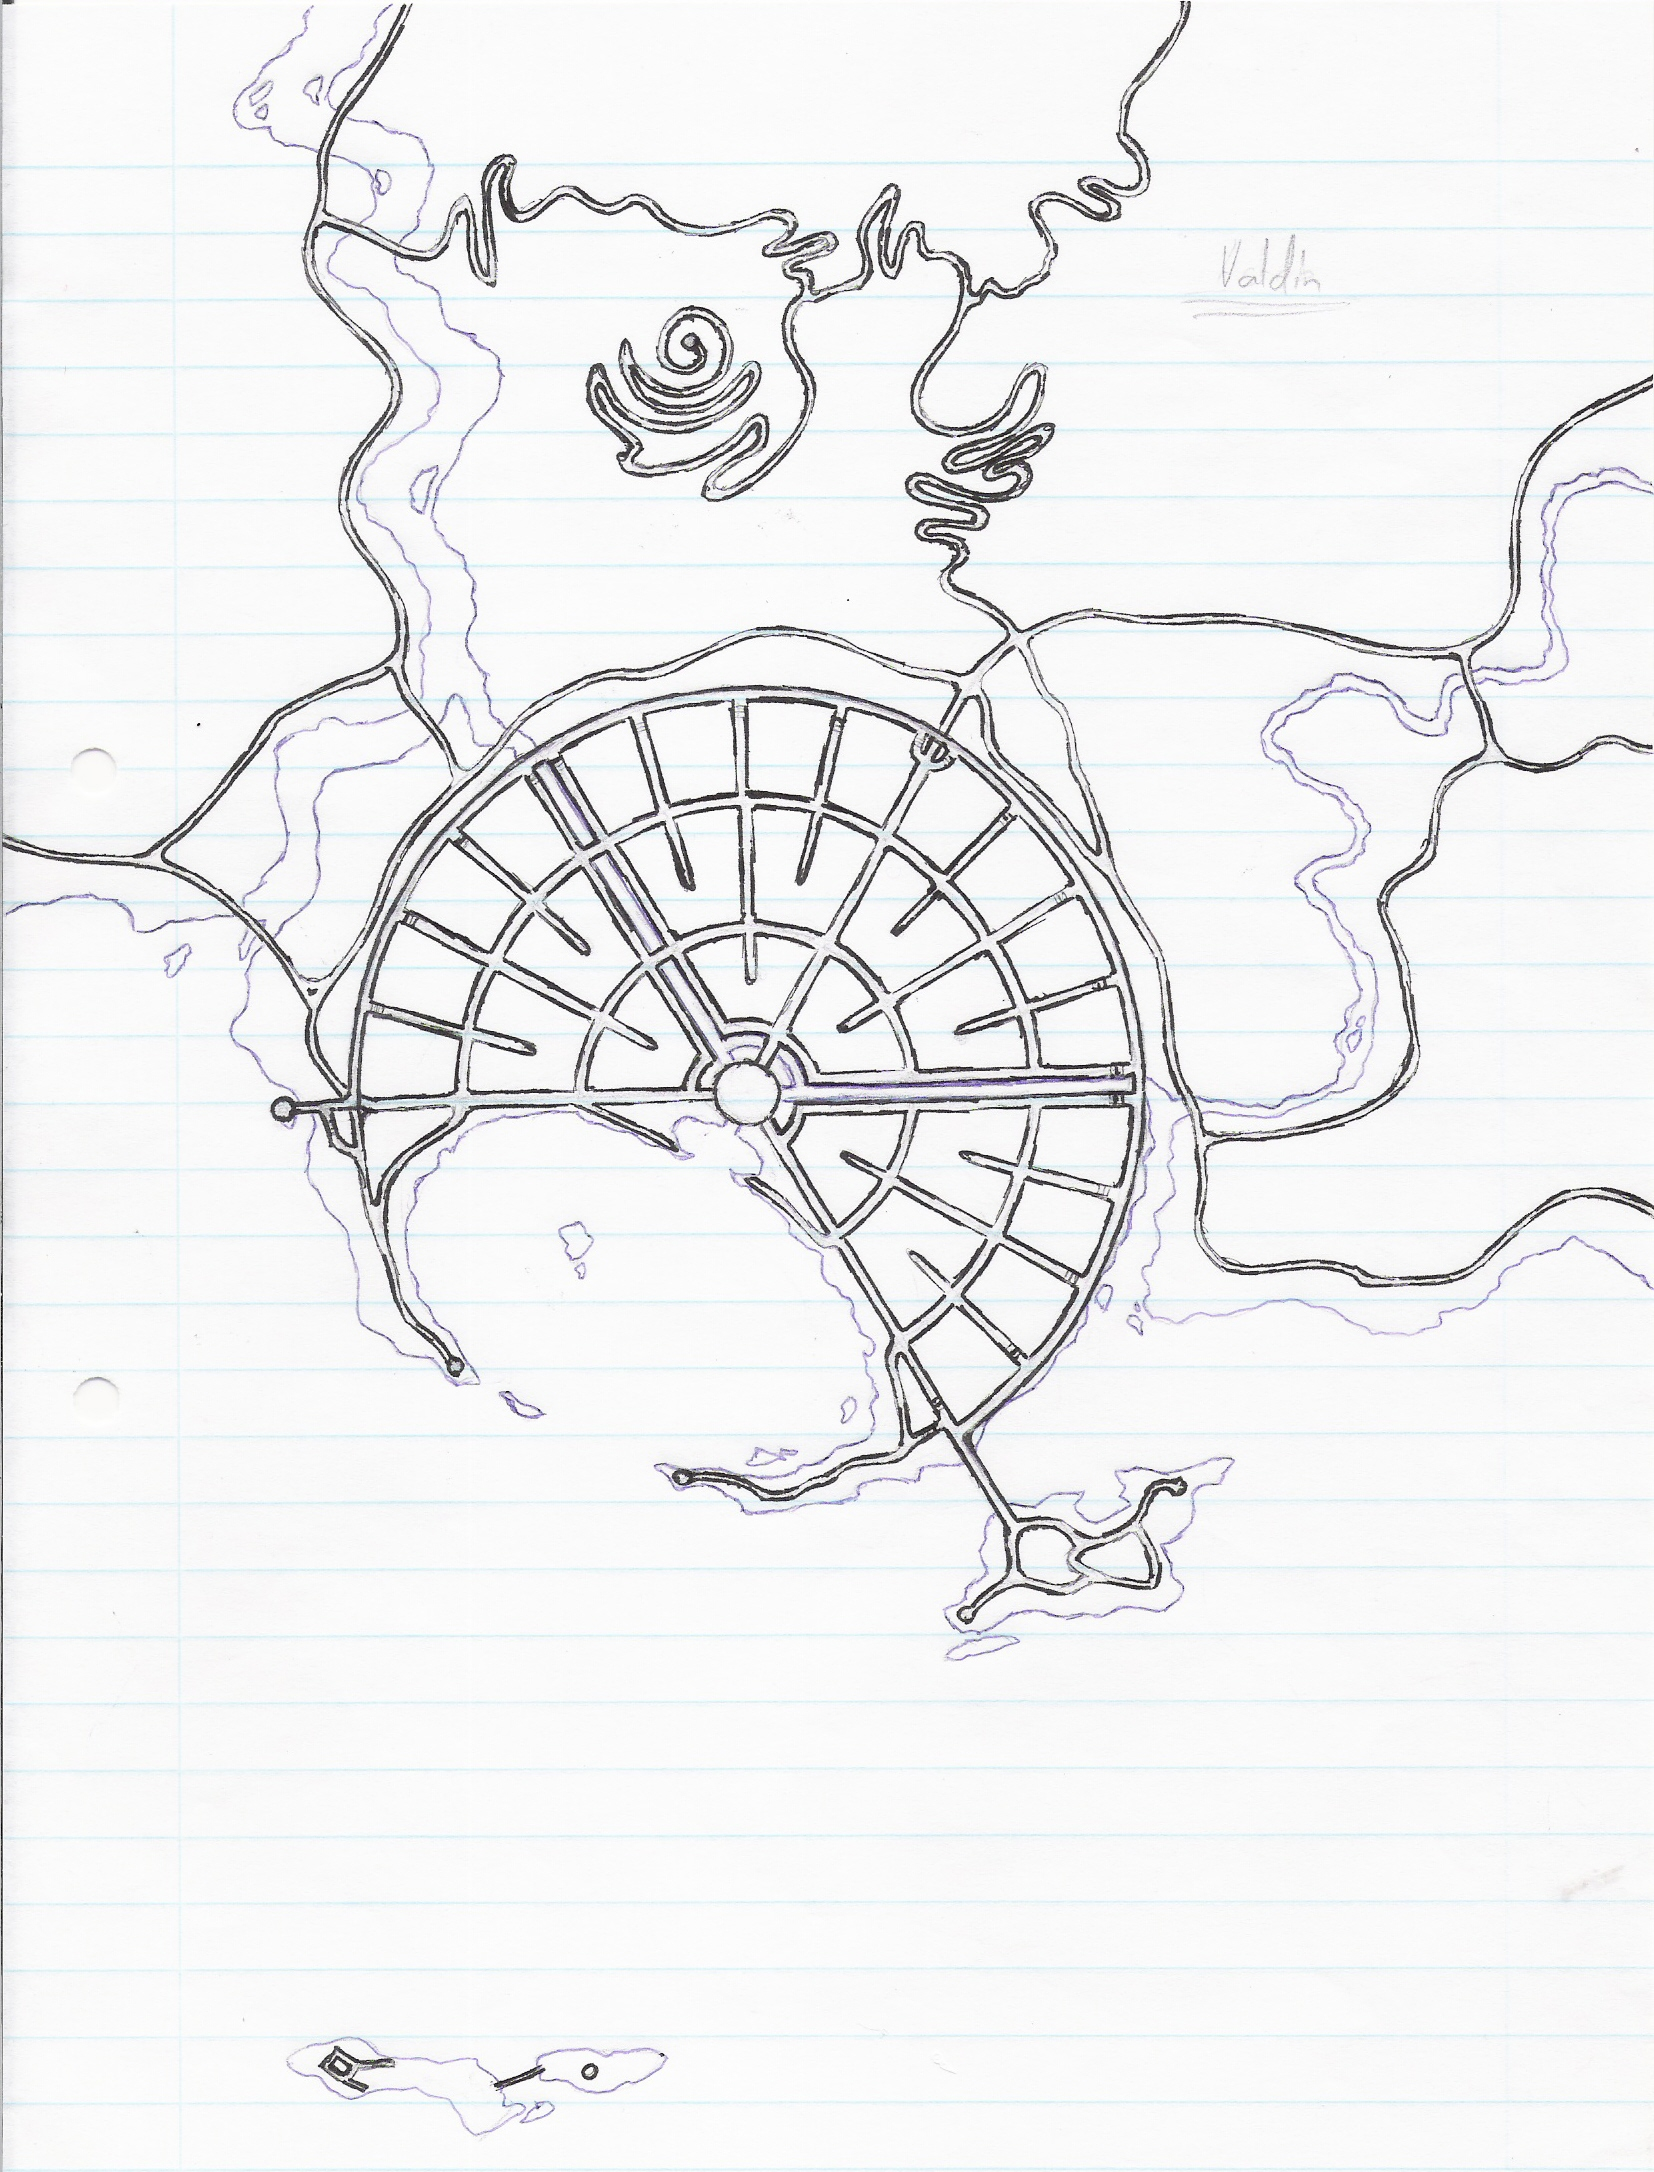 Valdin, Capitol of the Valiero'vi. Original hand drawn image.